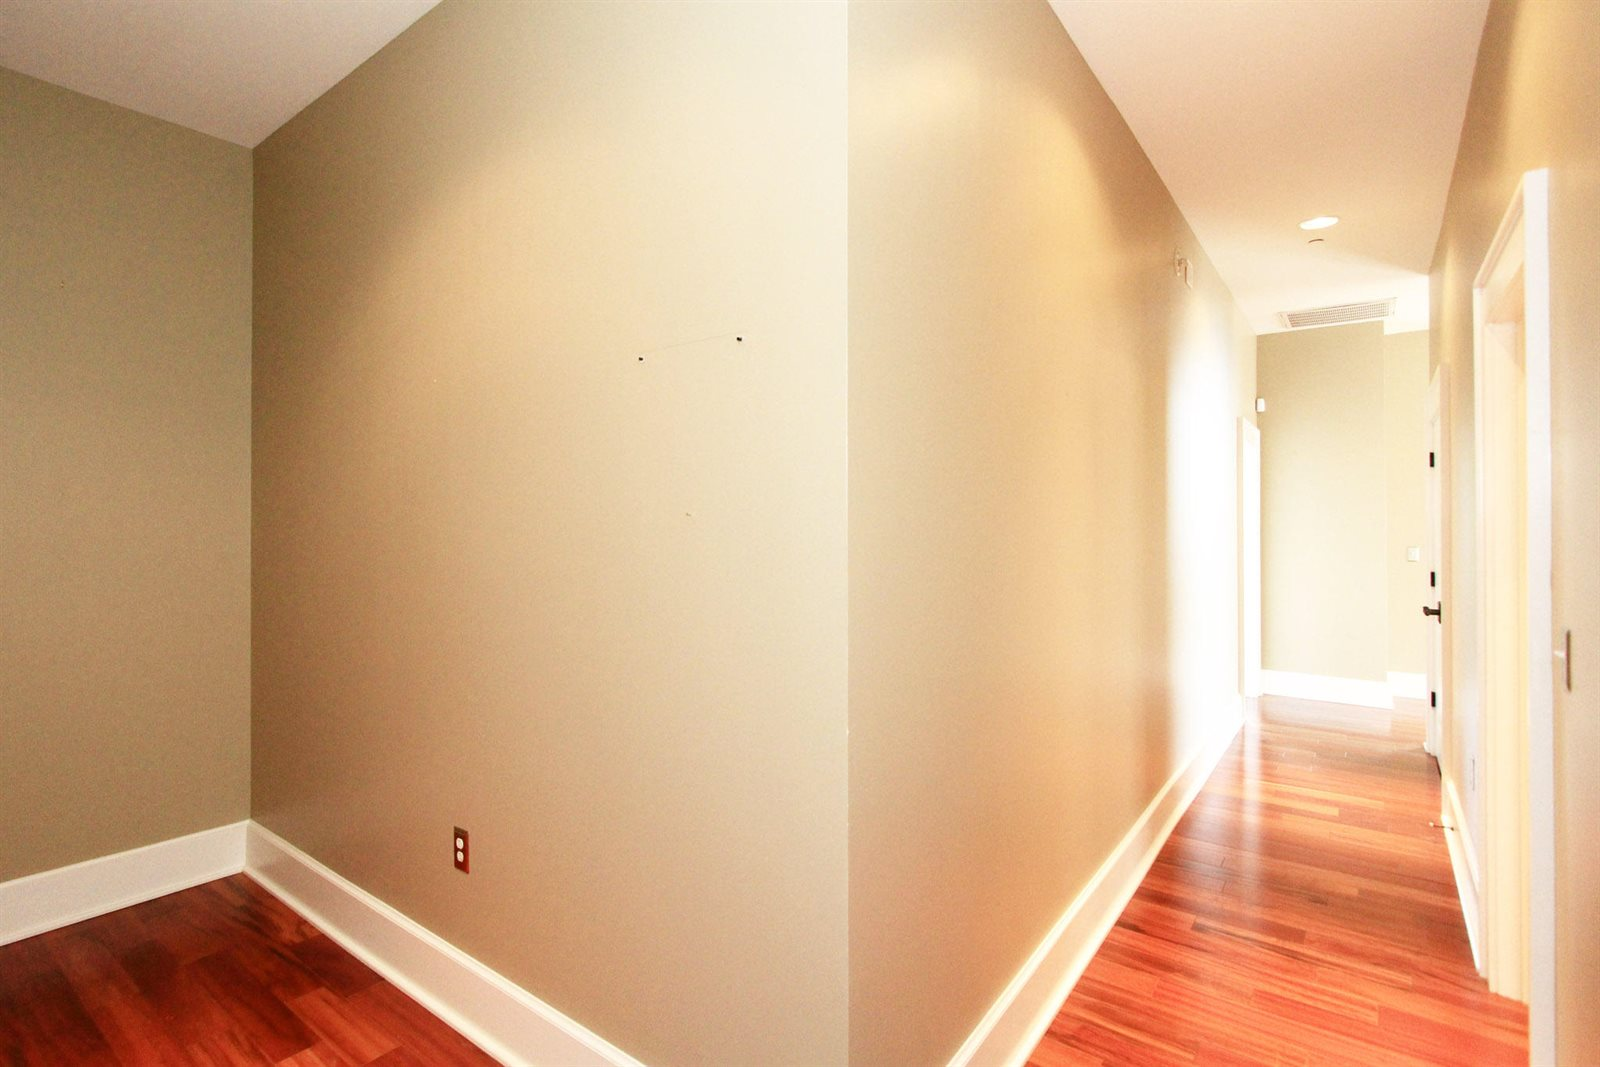 300 South Gay St, #204, Knoxville, TN 37902